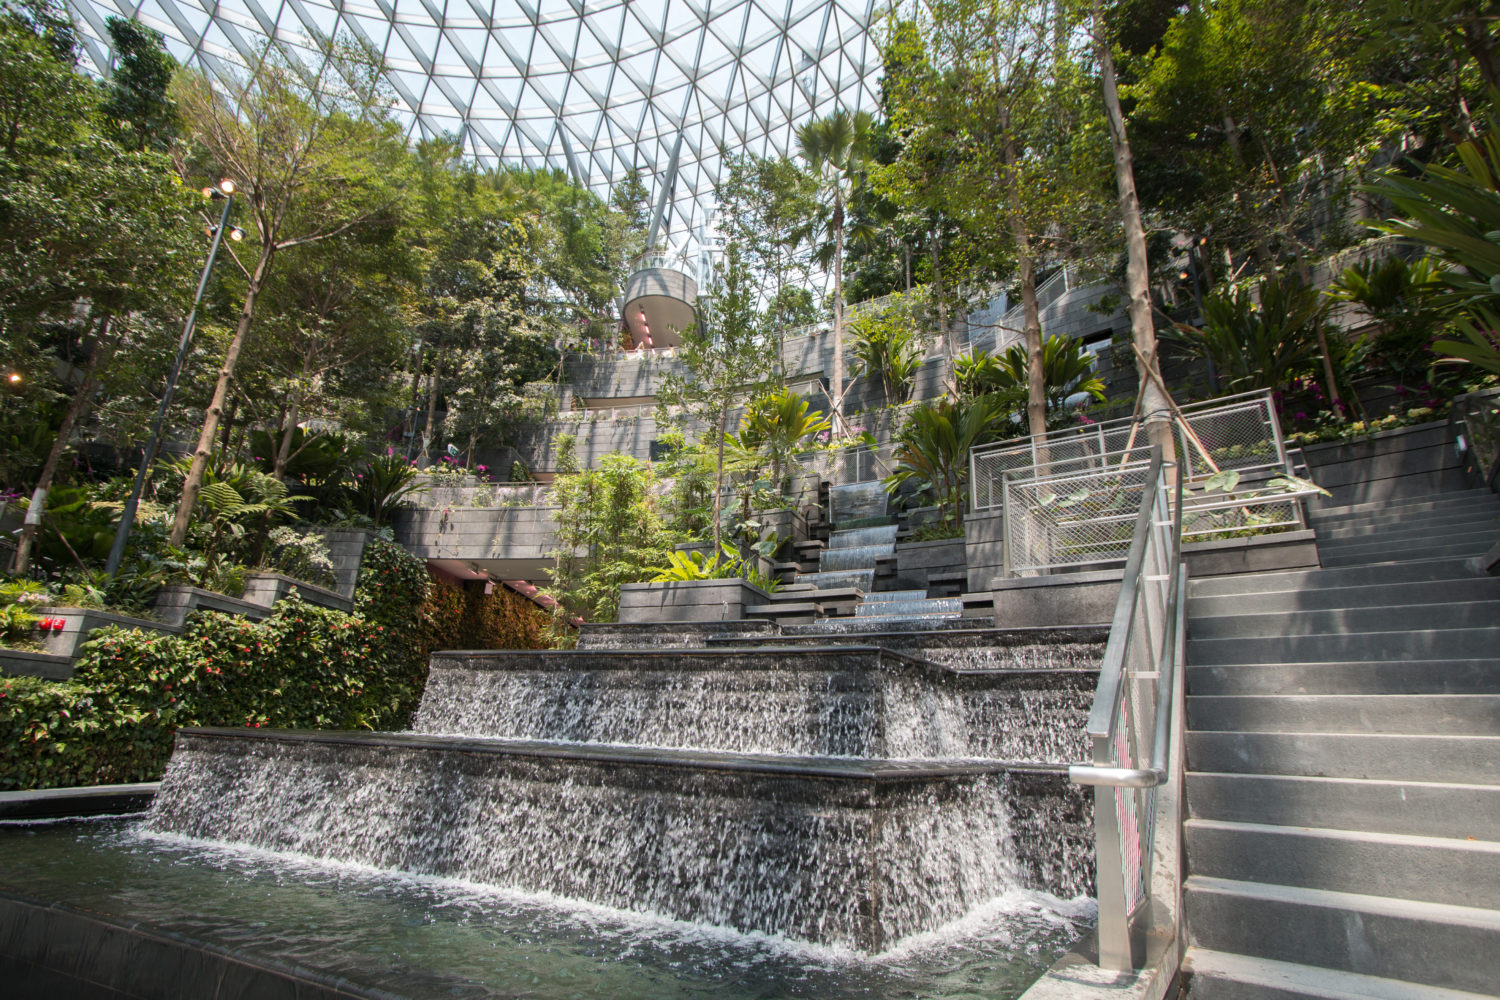 Changi Airport First Look At Jewel Changi Airport Attraction In Singapore